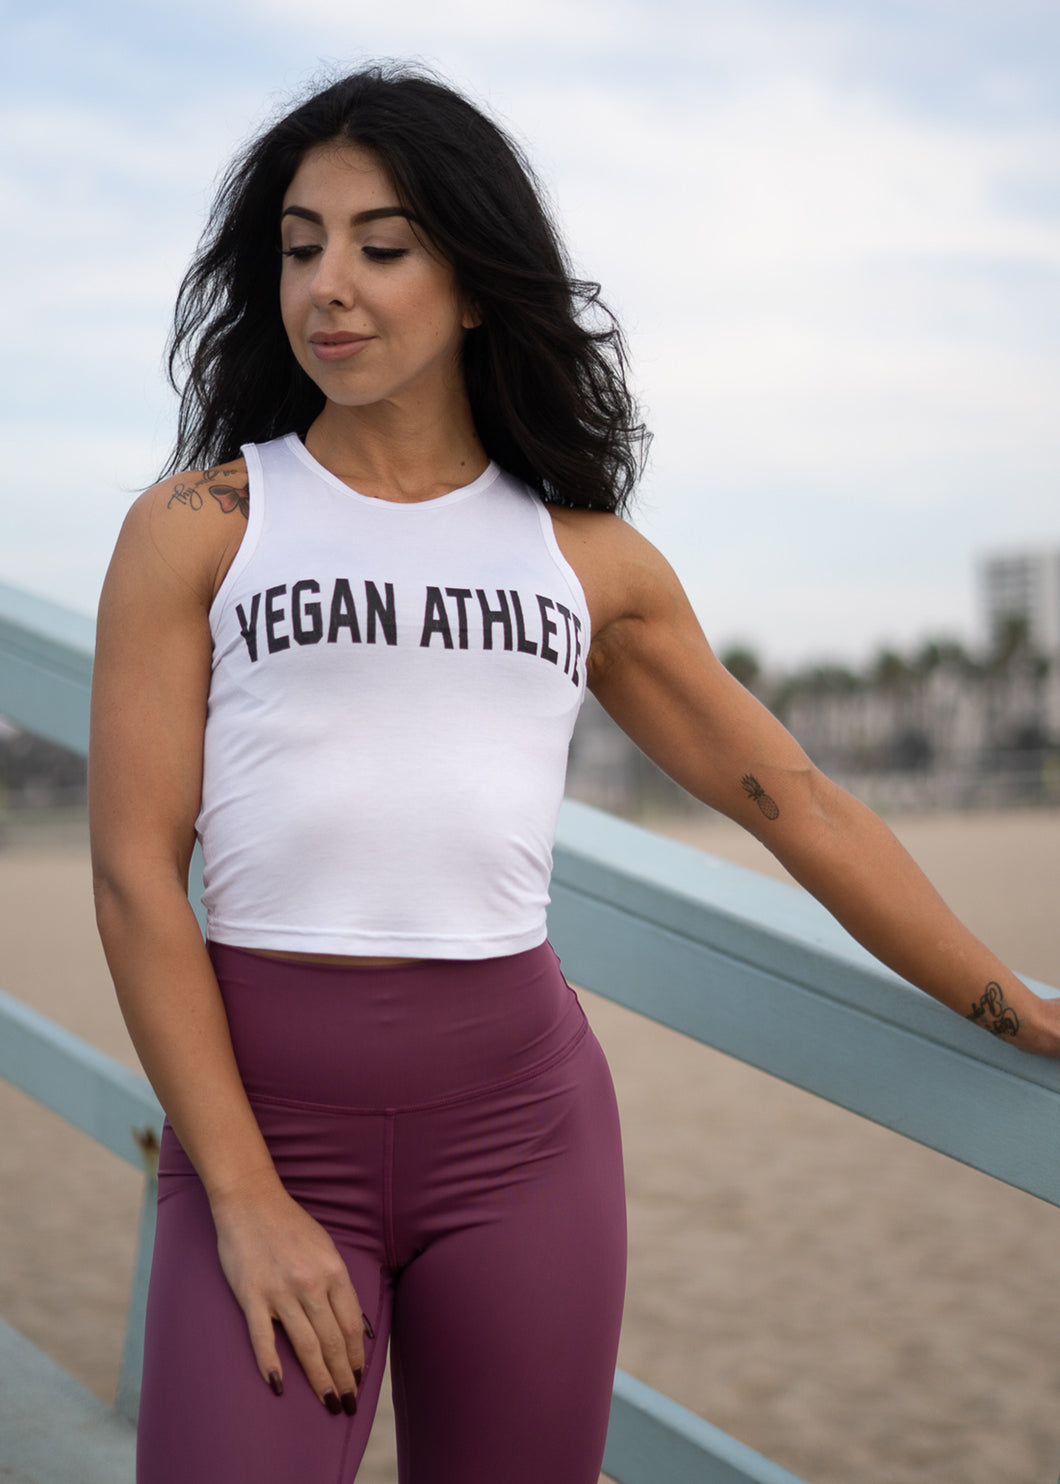 WHITE VEGAN ATHLETE TANK TOP